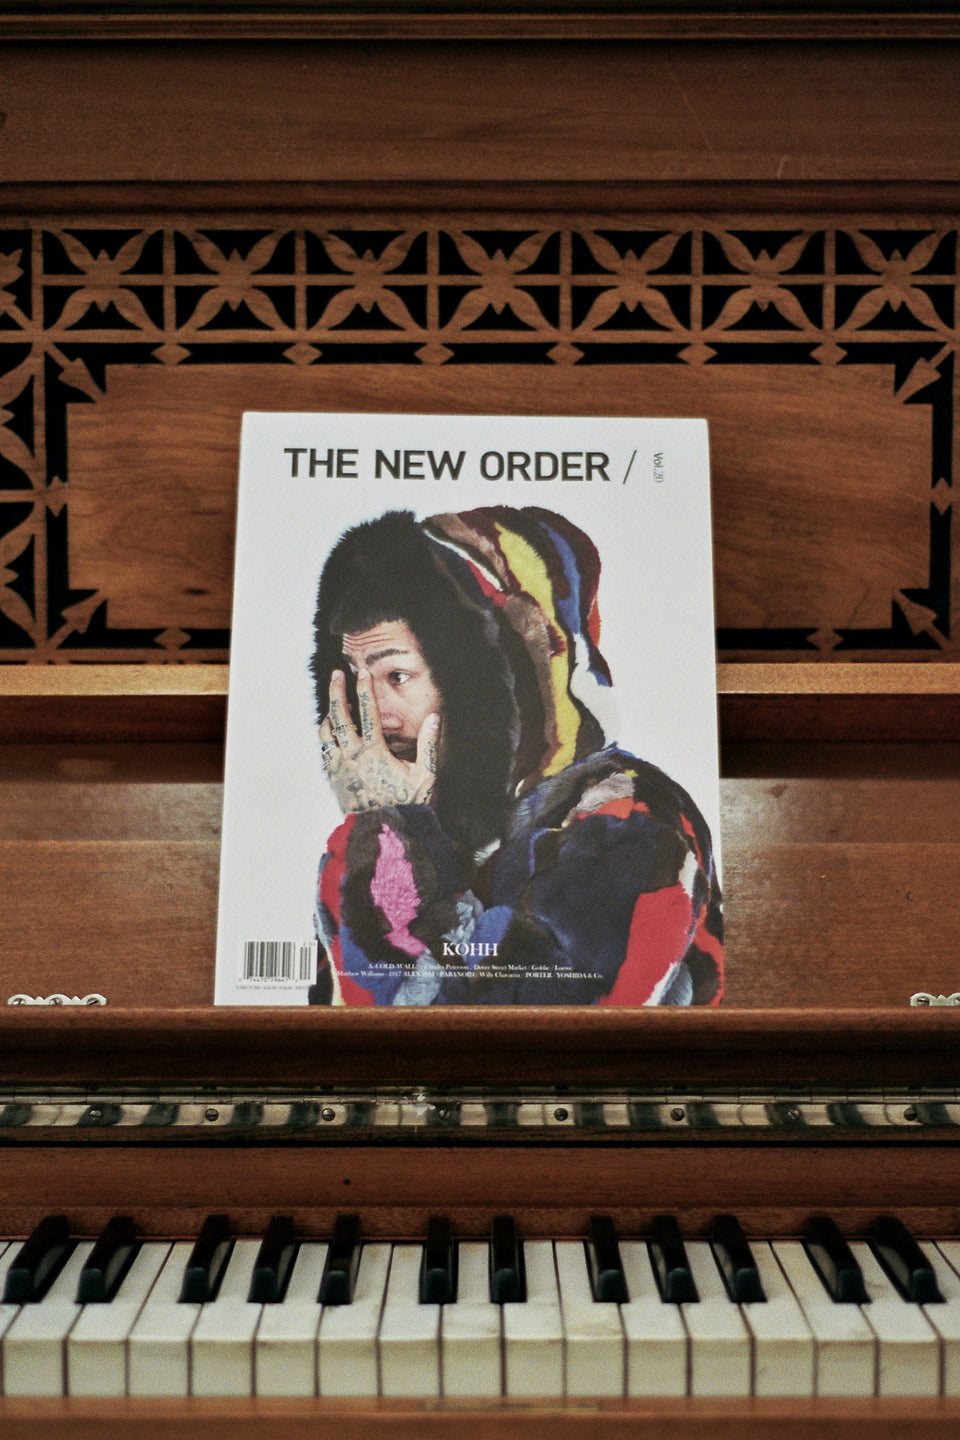 The New Order Magazine Vol. 20 - KOHH